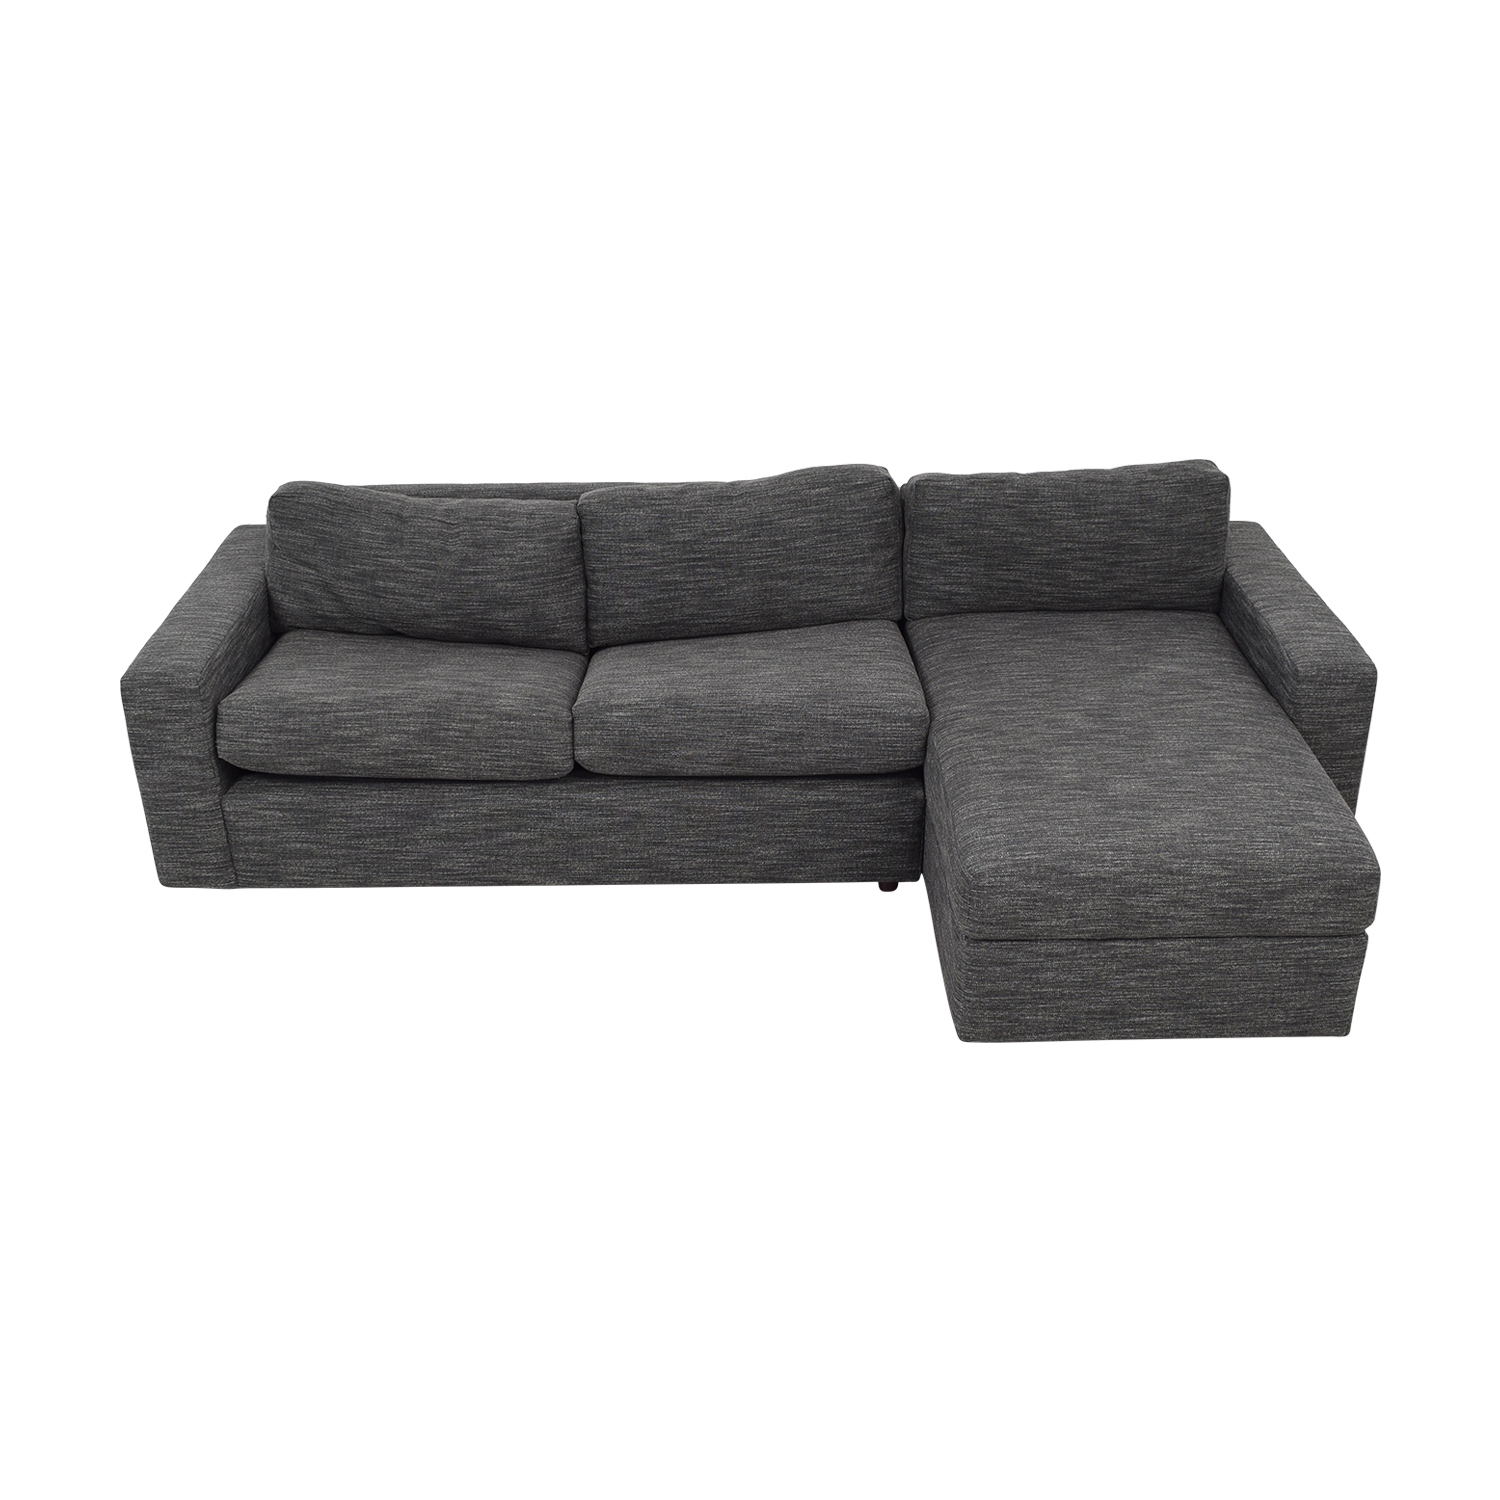 West Elm West Elm Urban Sleeper Sofa with Right Arm Storage Chaise for sale